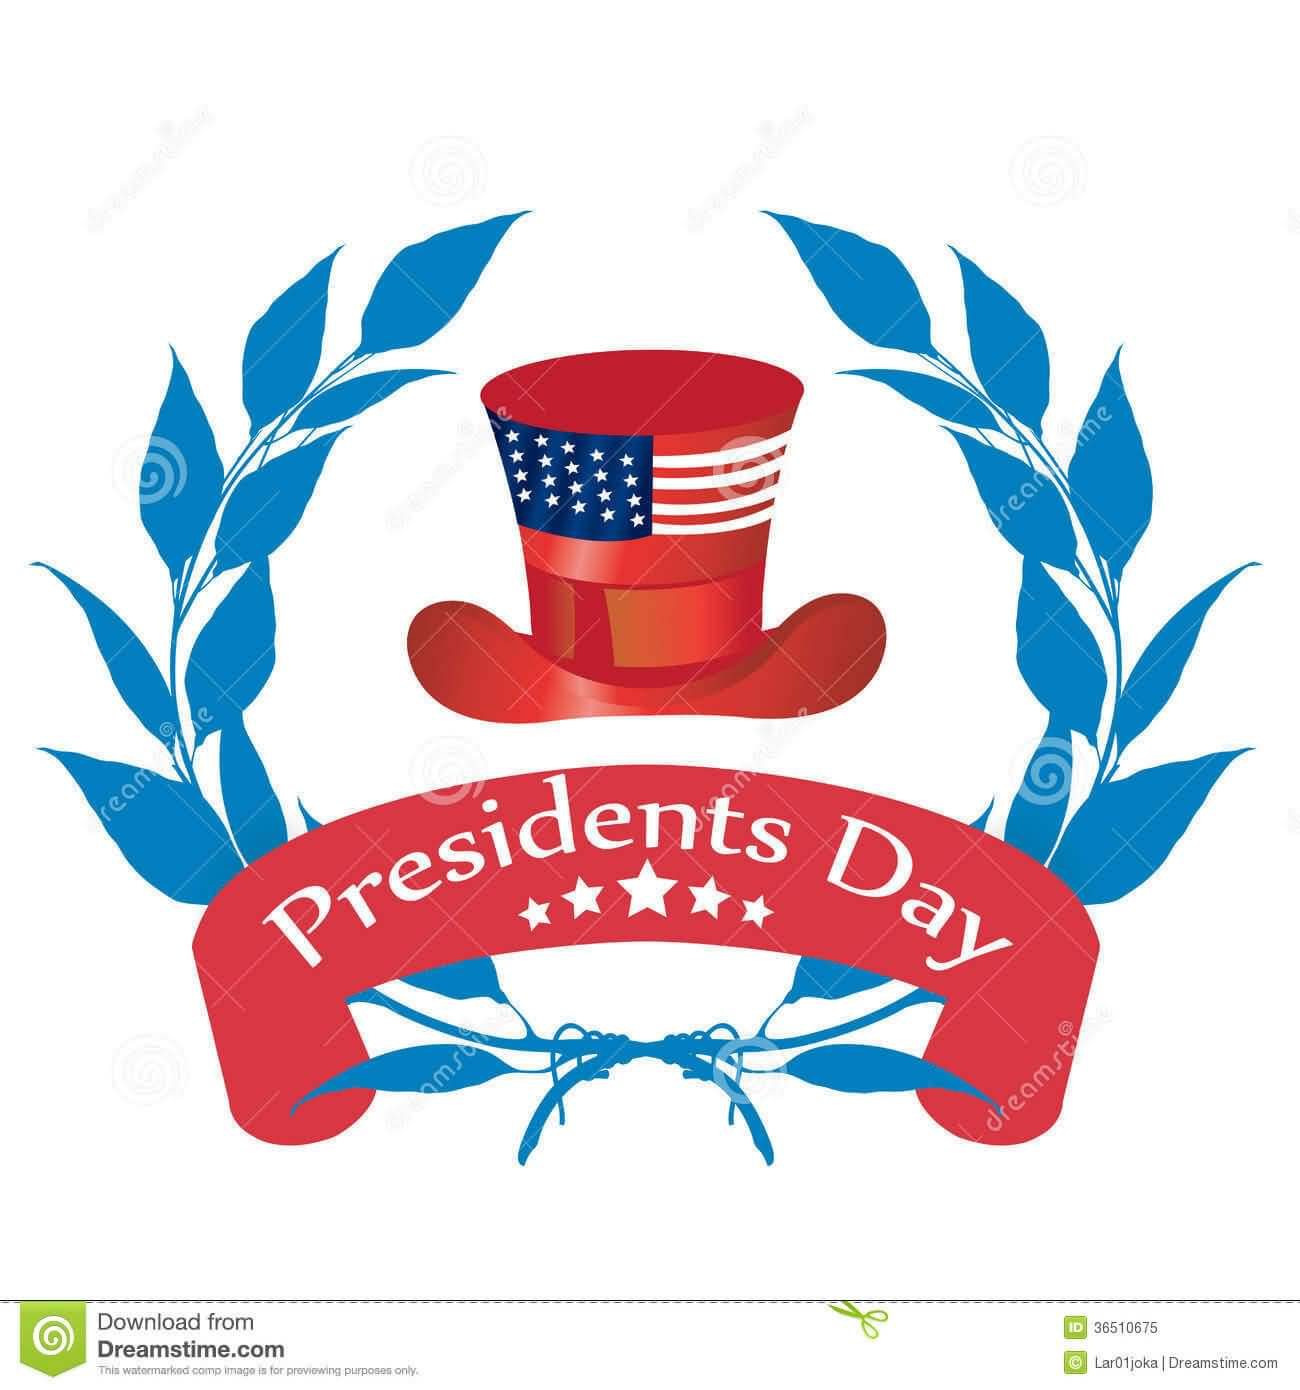 best wish pictures. 2018 clipart presidents day